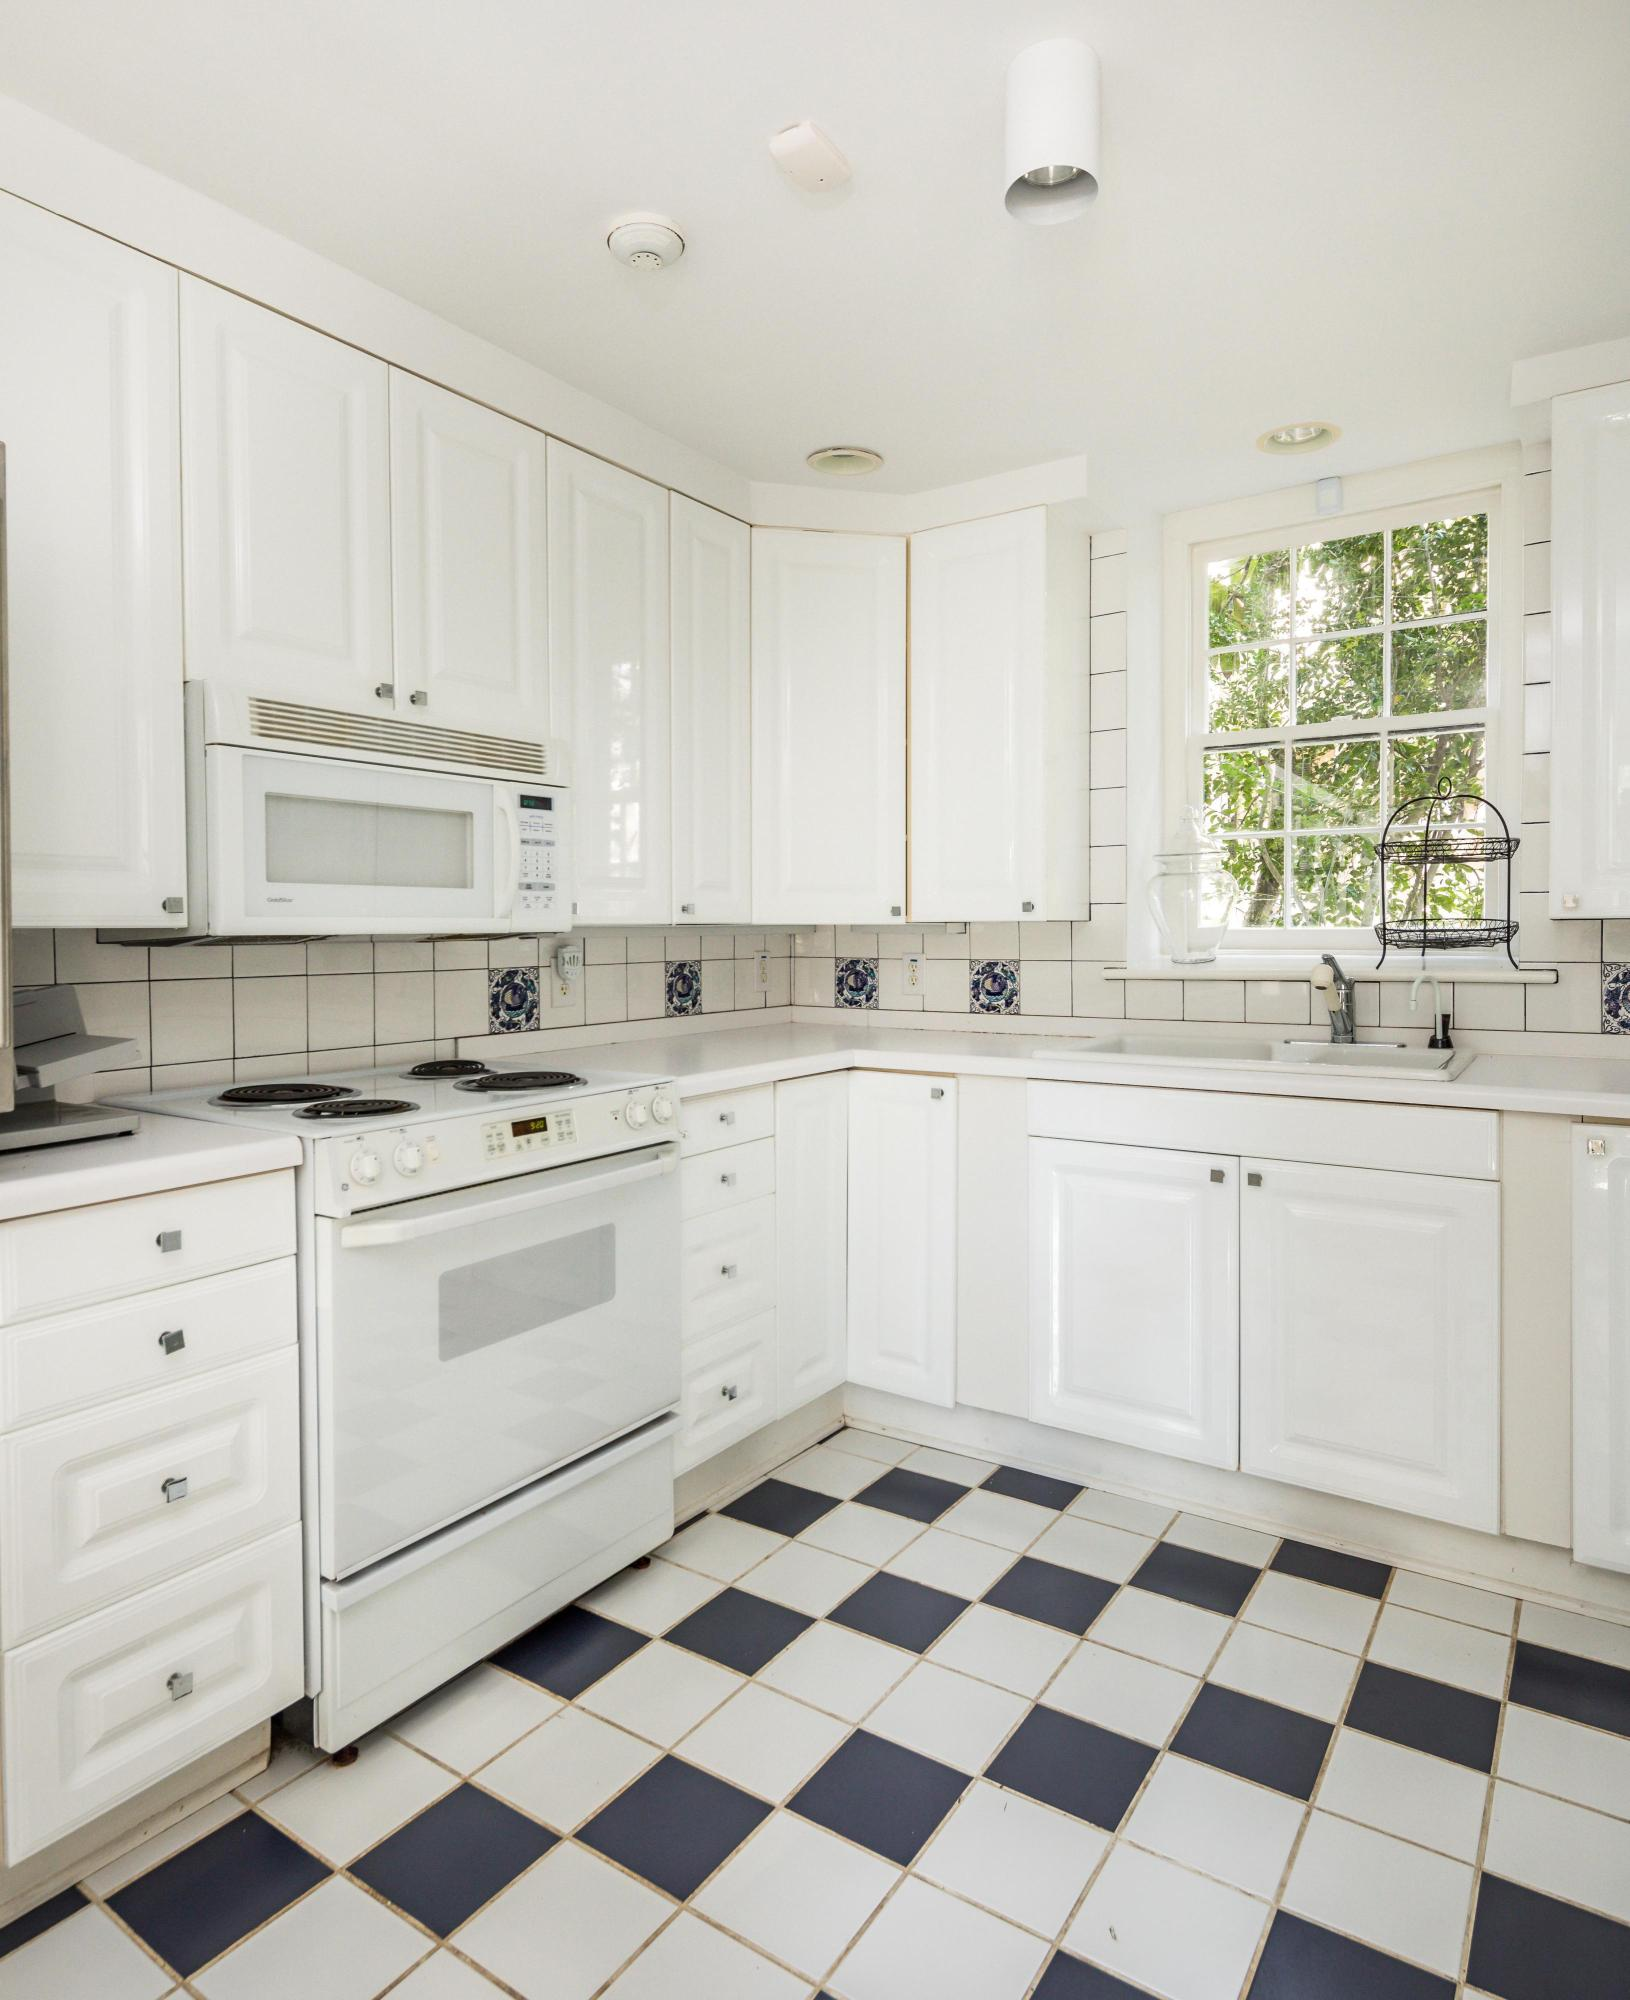 South of Broad Homes For Sale - 18 Church, Charleston, SC - 45